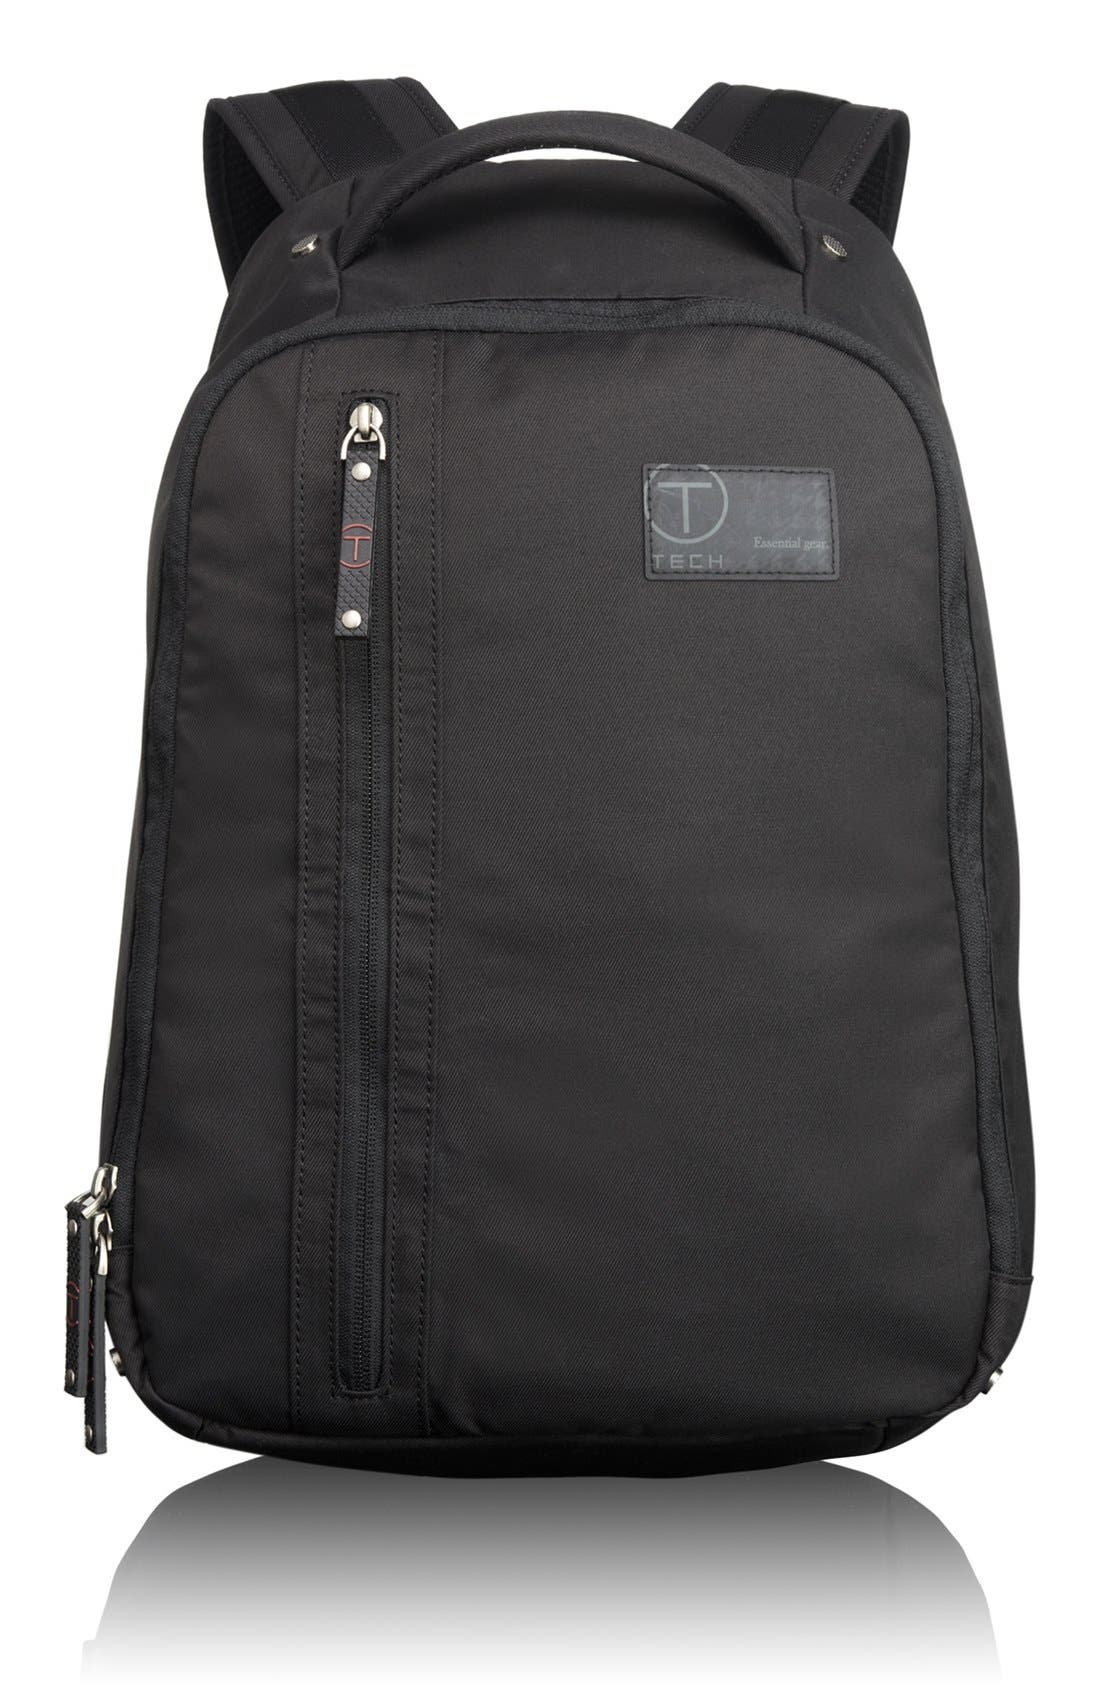 TUMI,                             T-Tech by Tumi 'Icon - Marley' Backpack,                             Main thumbnail 1, color,                             002